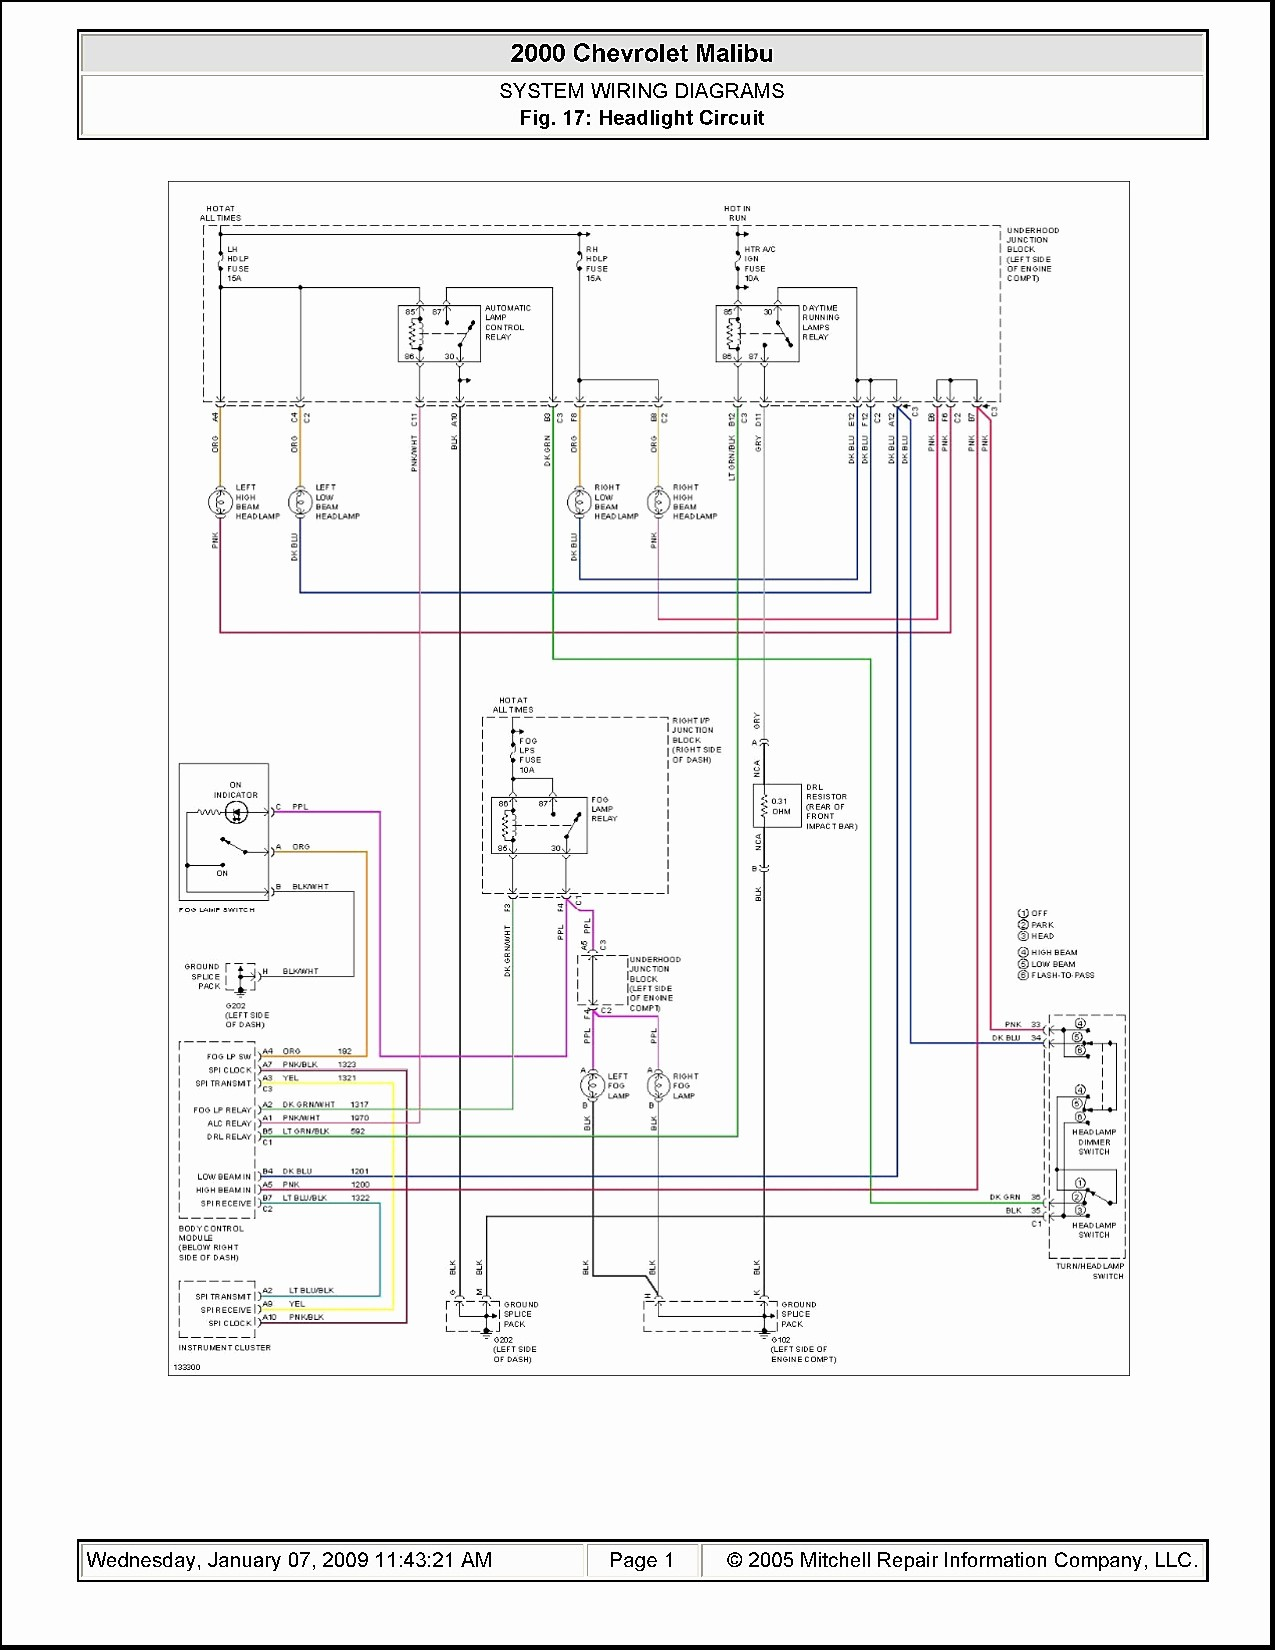 2001 Mazda 3000 Wiring Diagrams Library B3000 Diagram 2003 Hyundai Santa Fe Fuse Box U2022 B4000